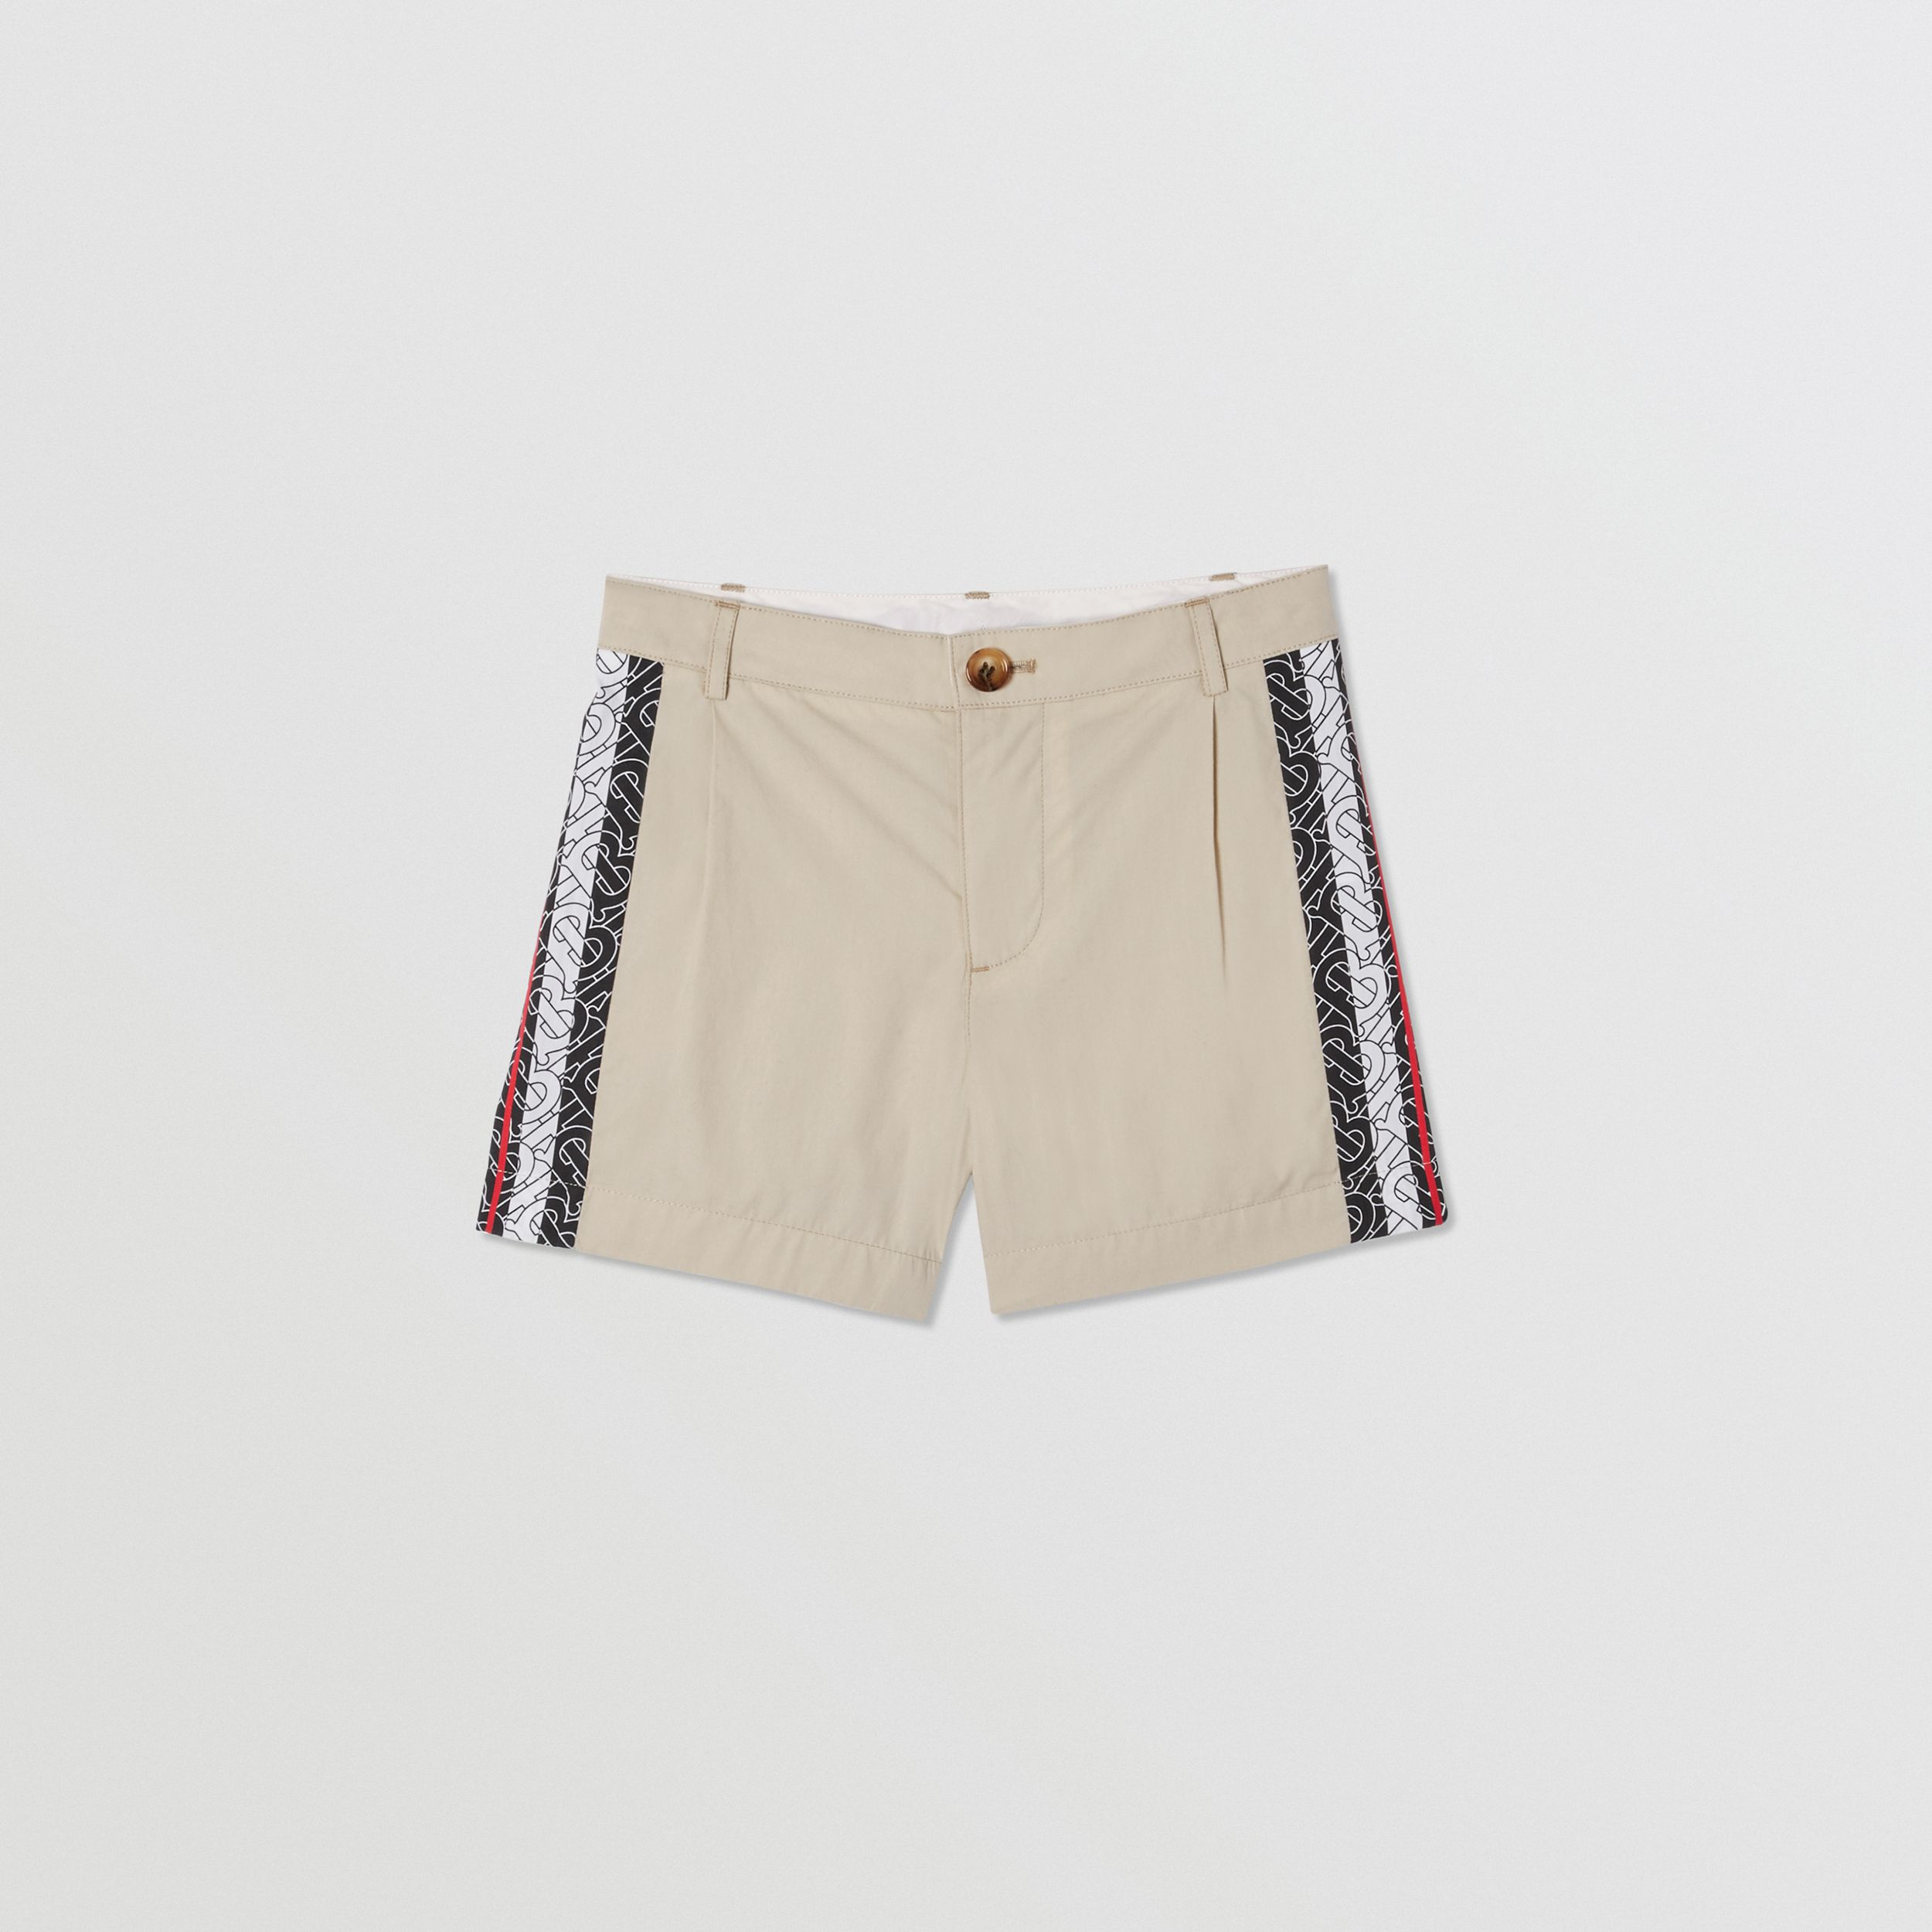 Monogram Stripe Print Cotton Tailored Shorts in Stone | Burberry - 1